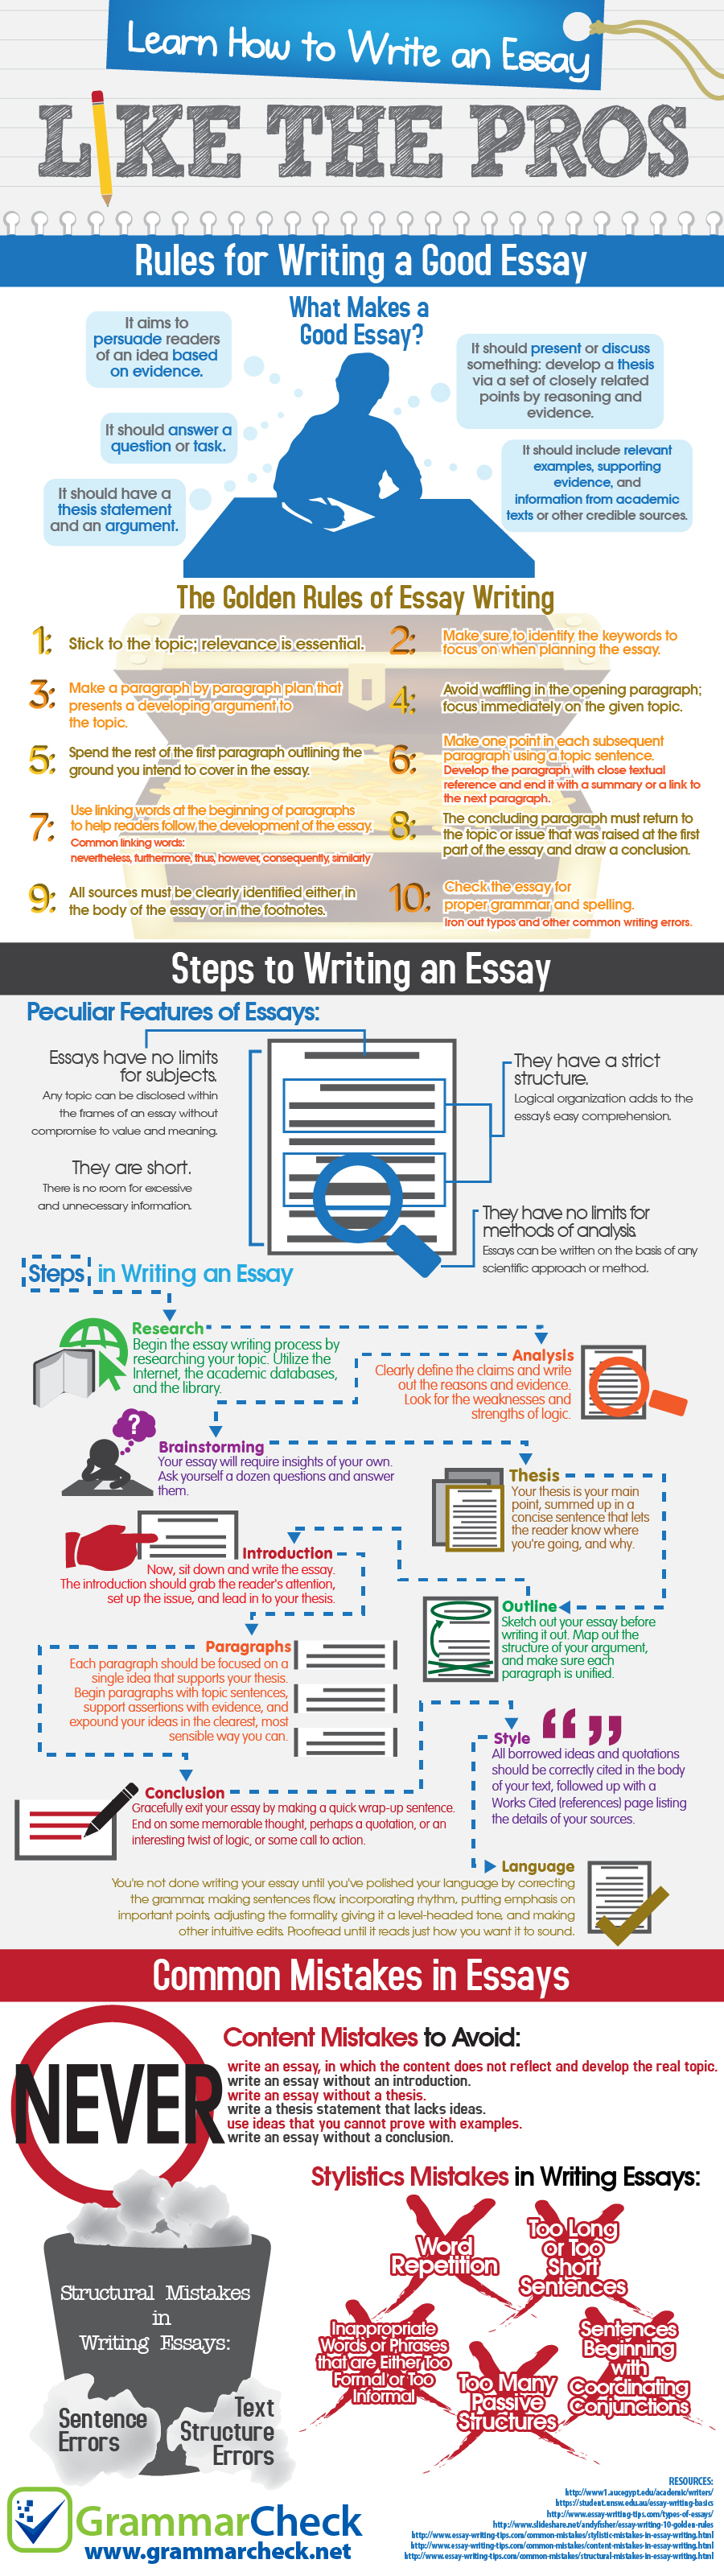 essay grammar check grammarly review online grammar check spell check and plagiarism